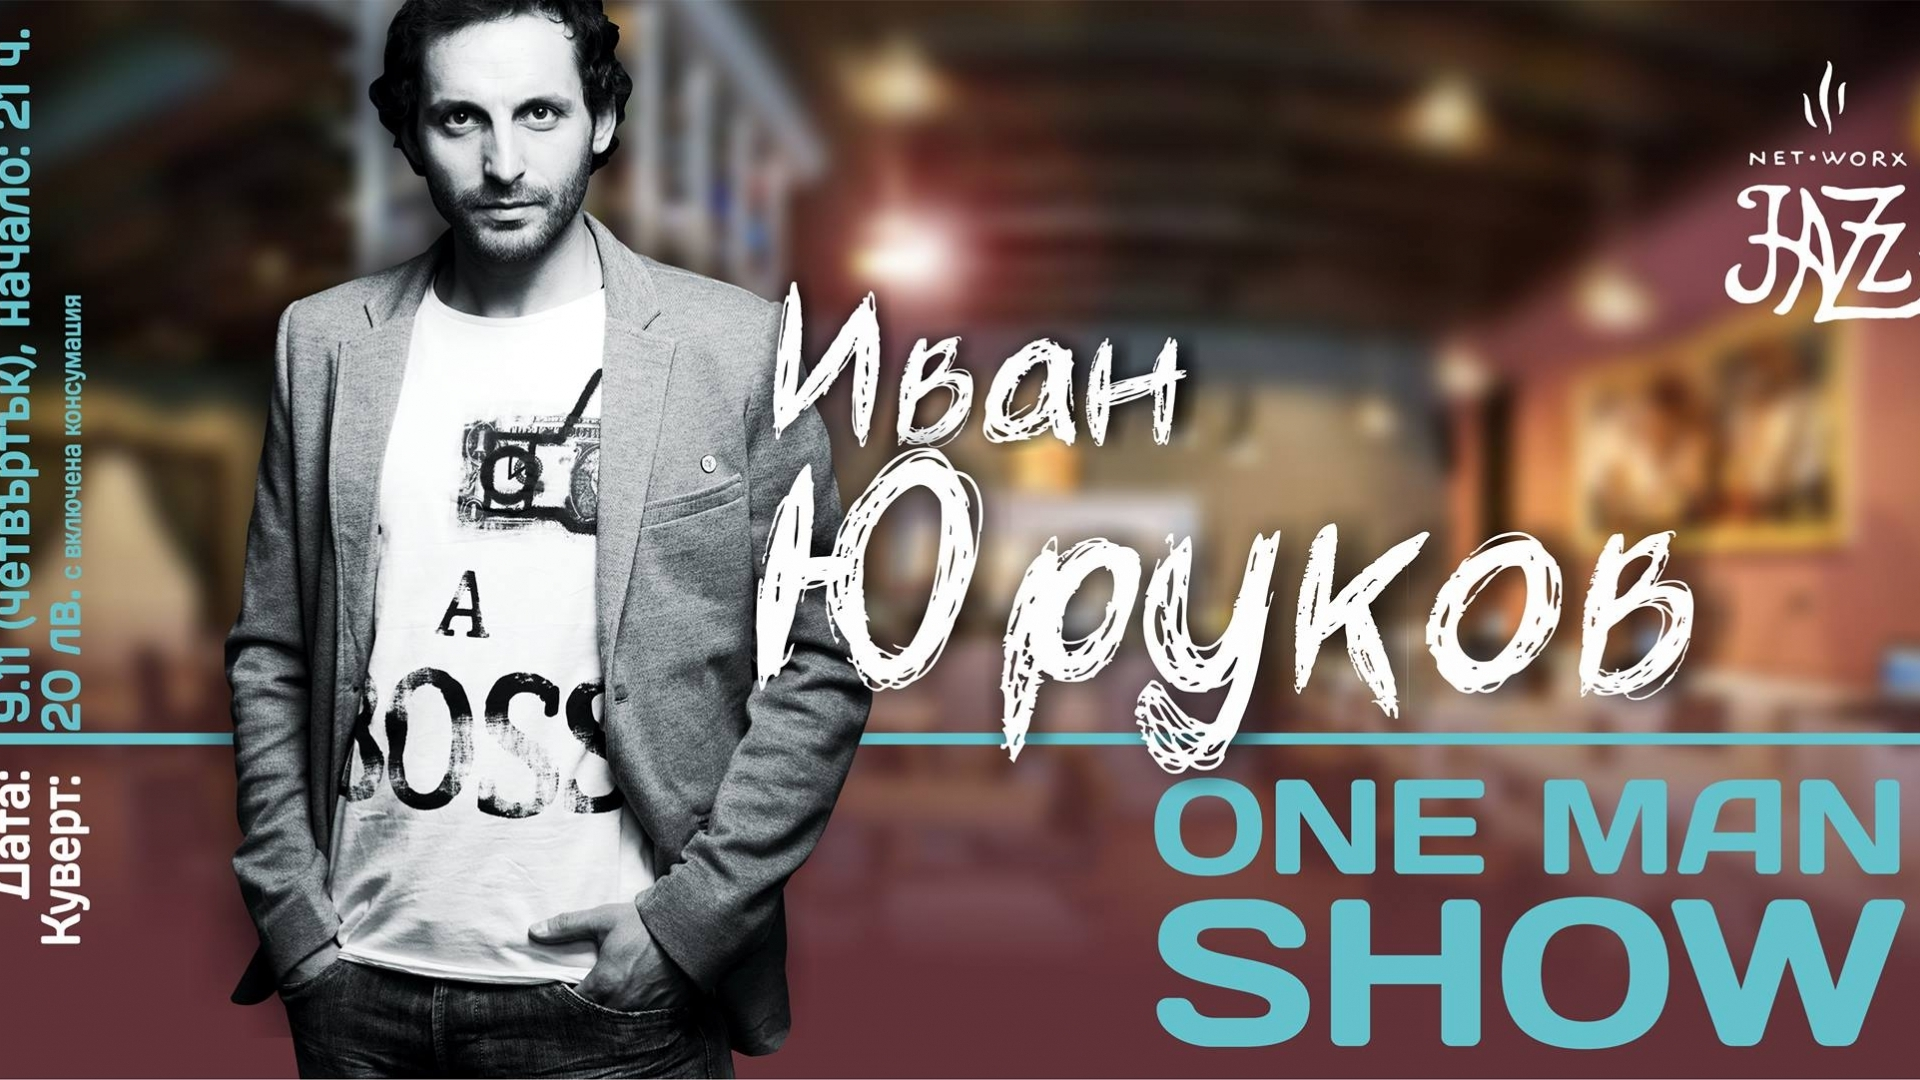 9 ноември 2017 - One Man Show на Иван Юруков в NetWorx Jazz